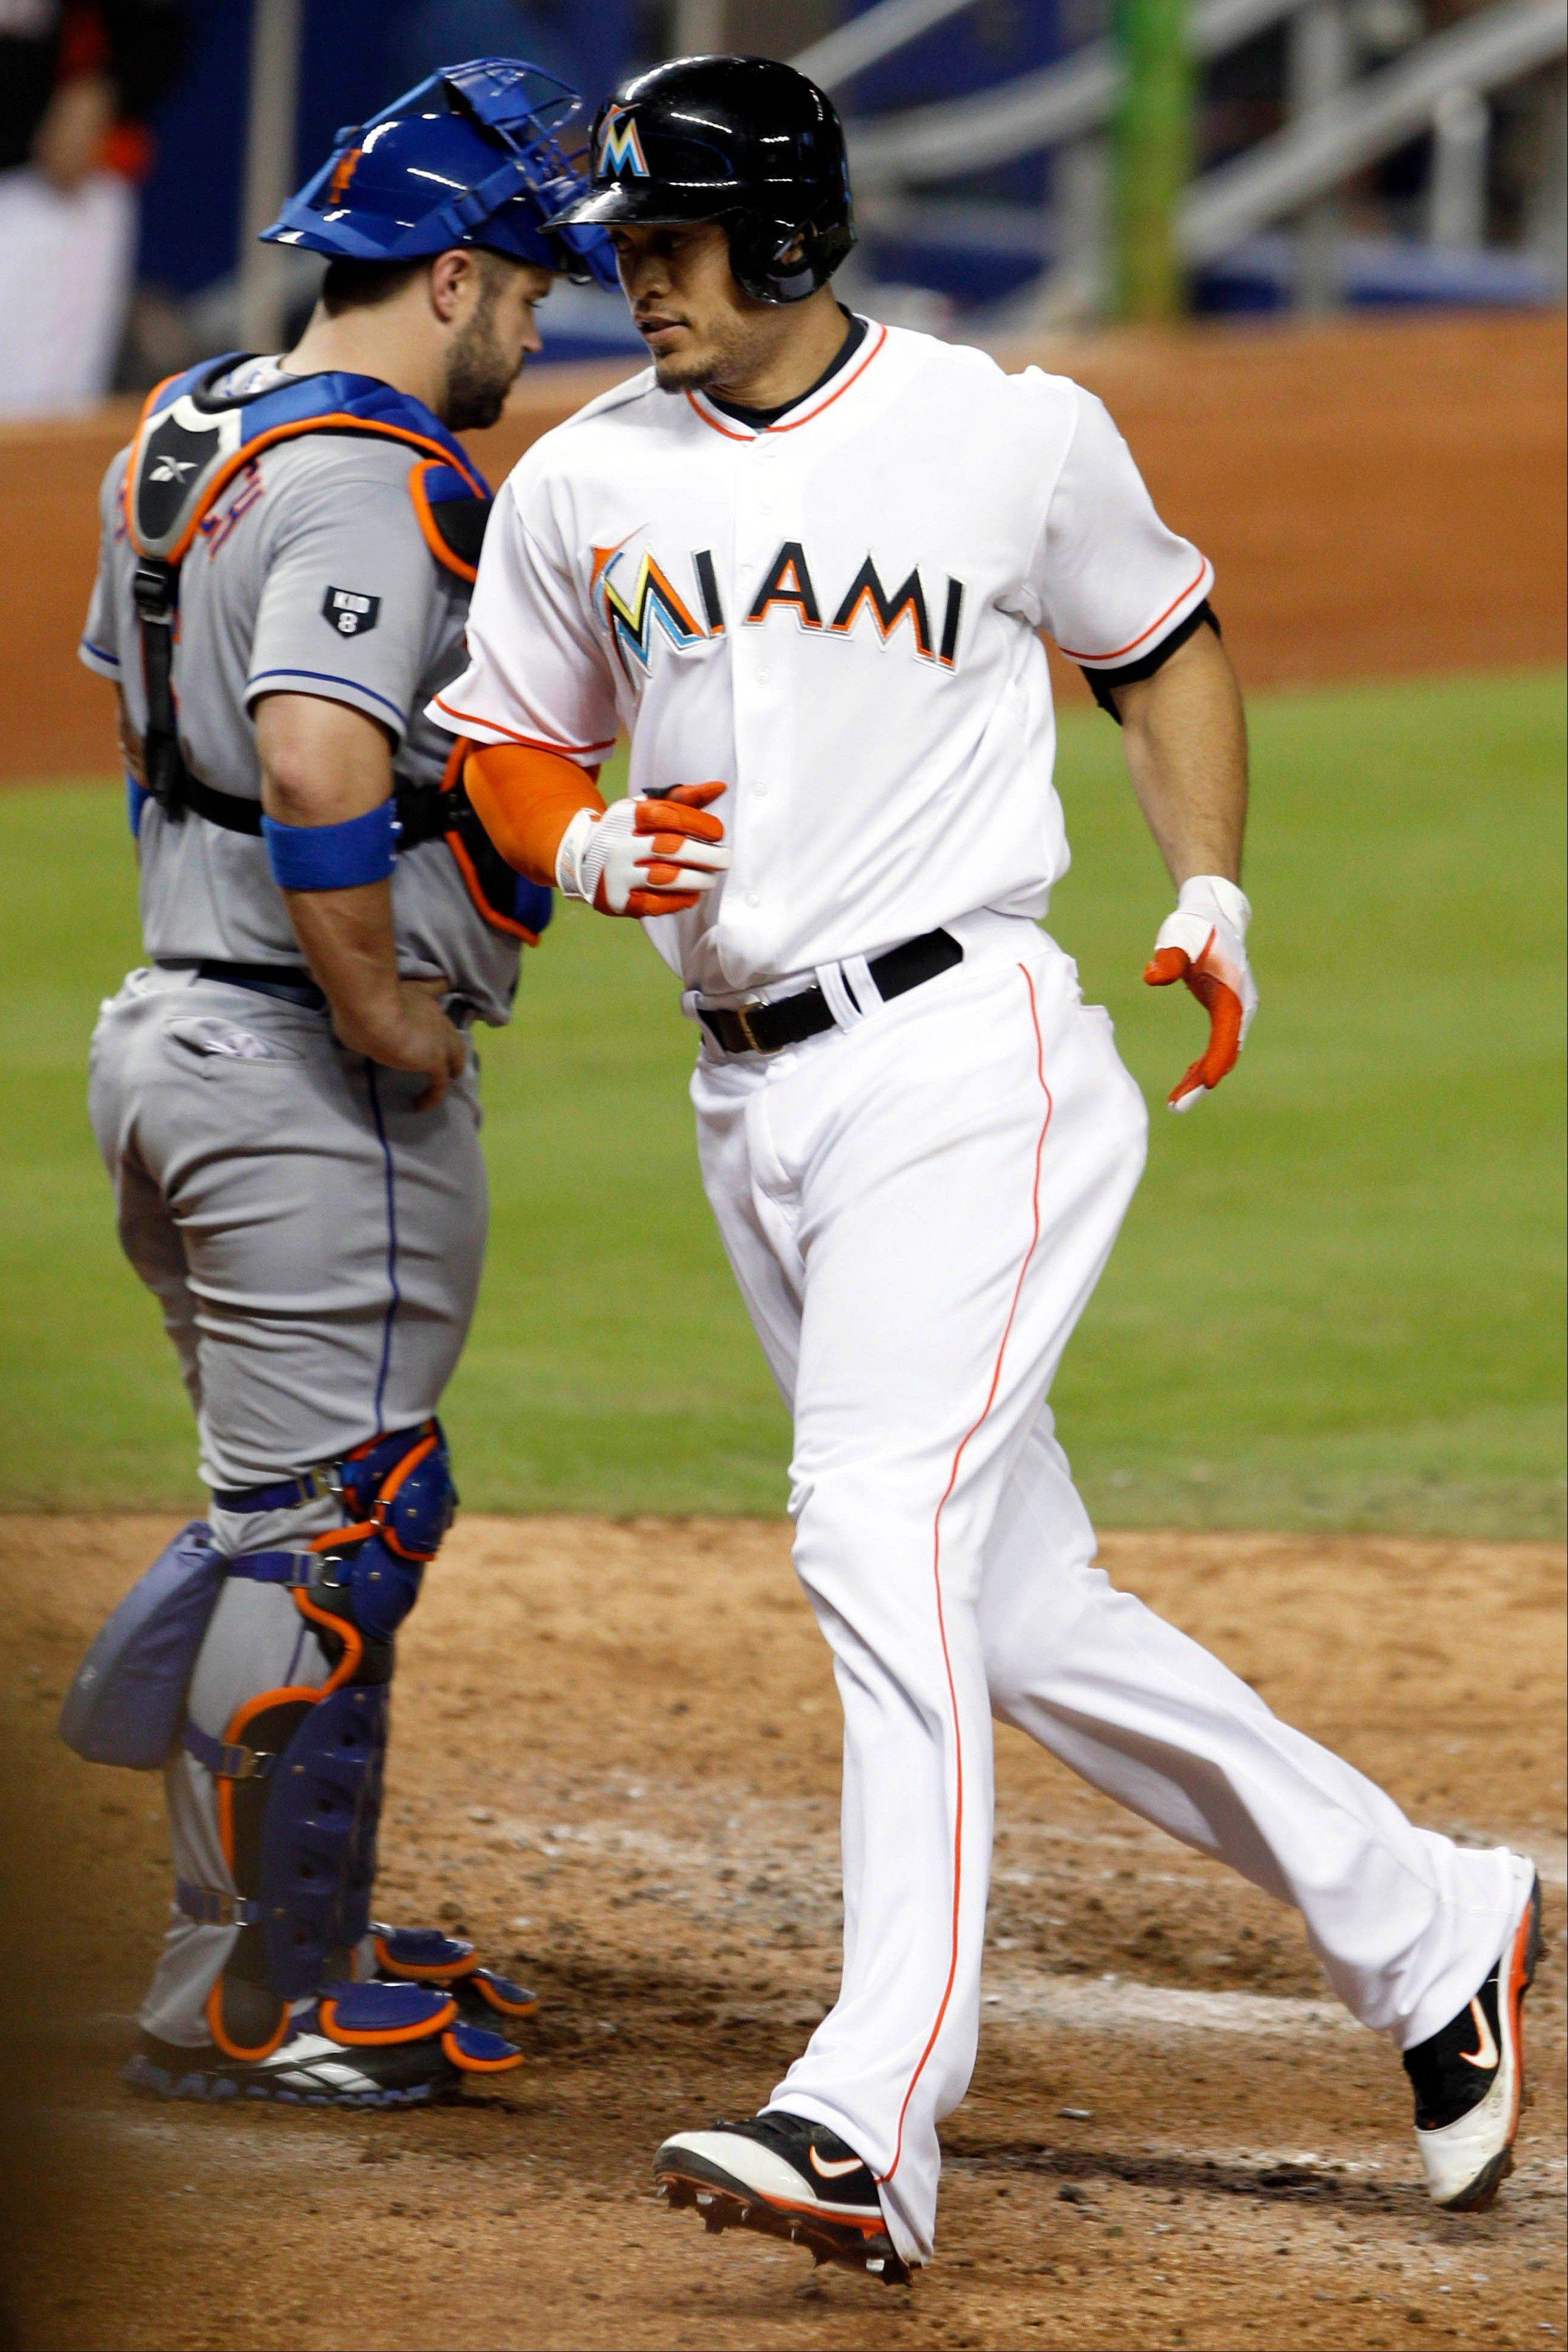 The Marlins' Giancarlo Stanton crosses the plate after hitting a home run in the sixth inning Monday in Miami.